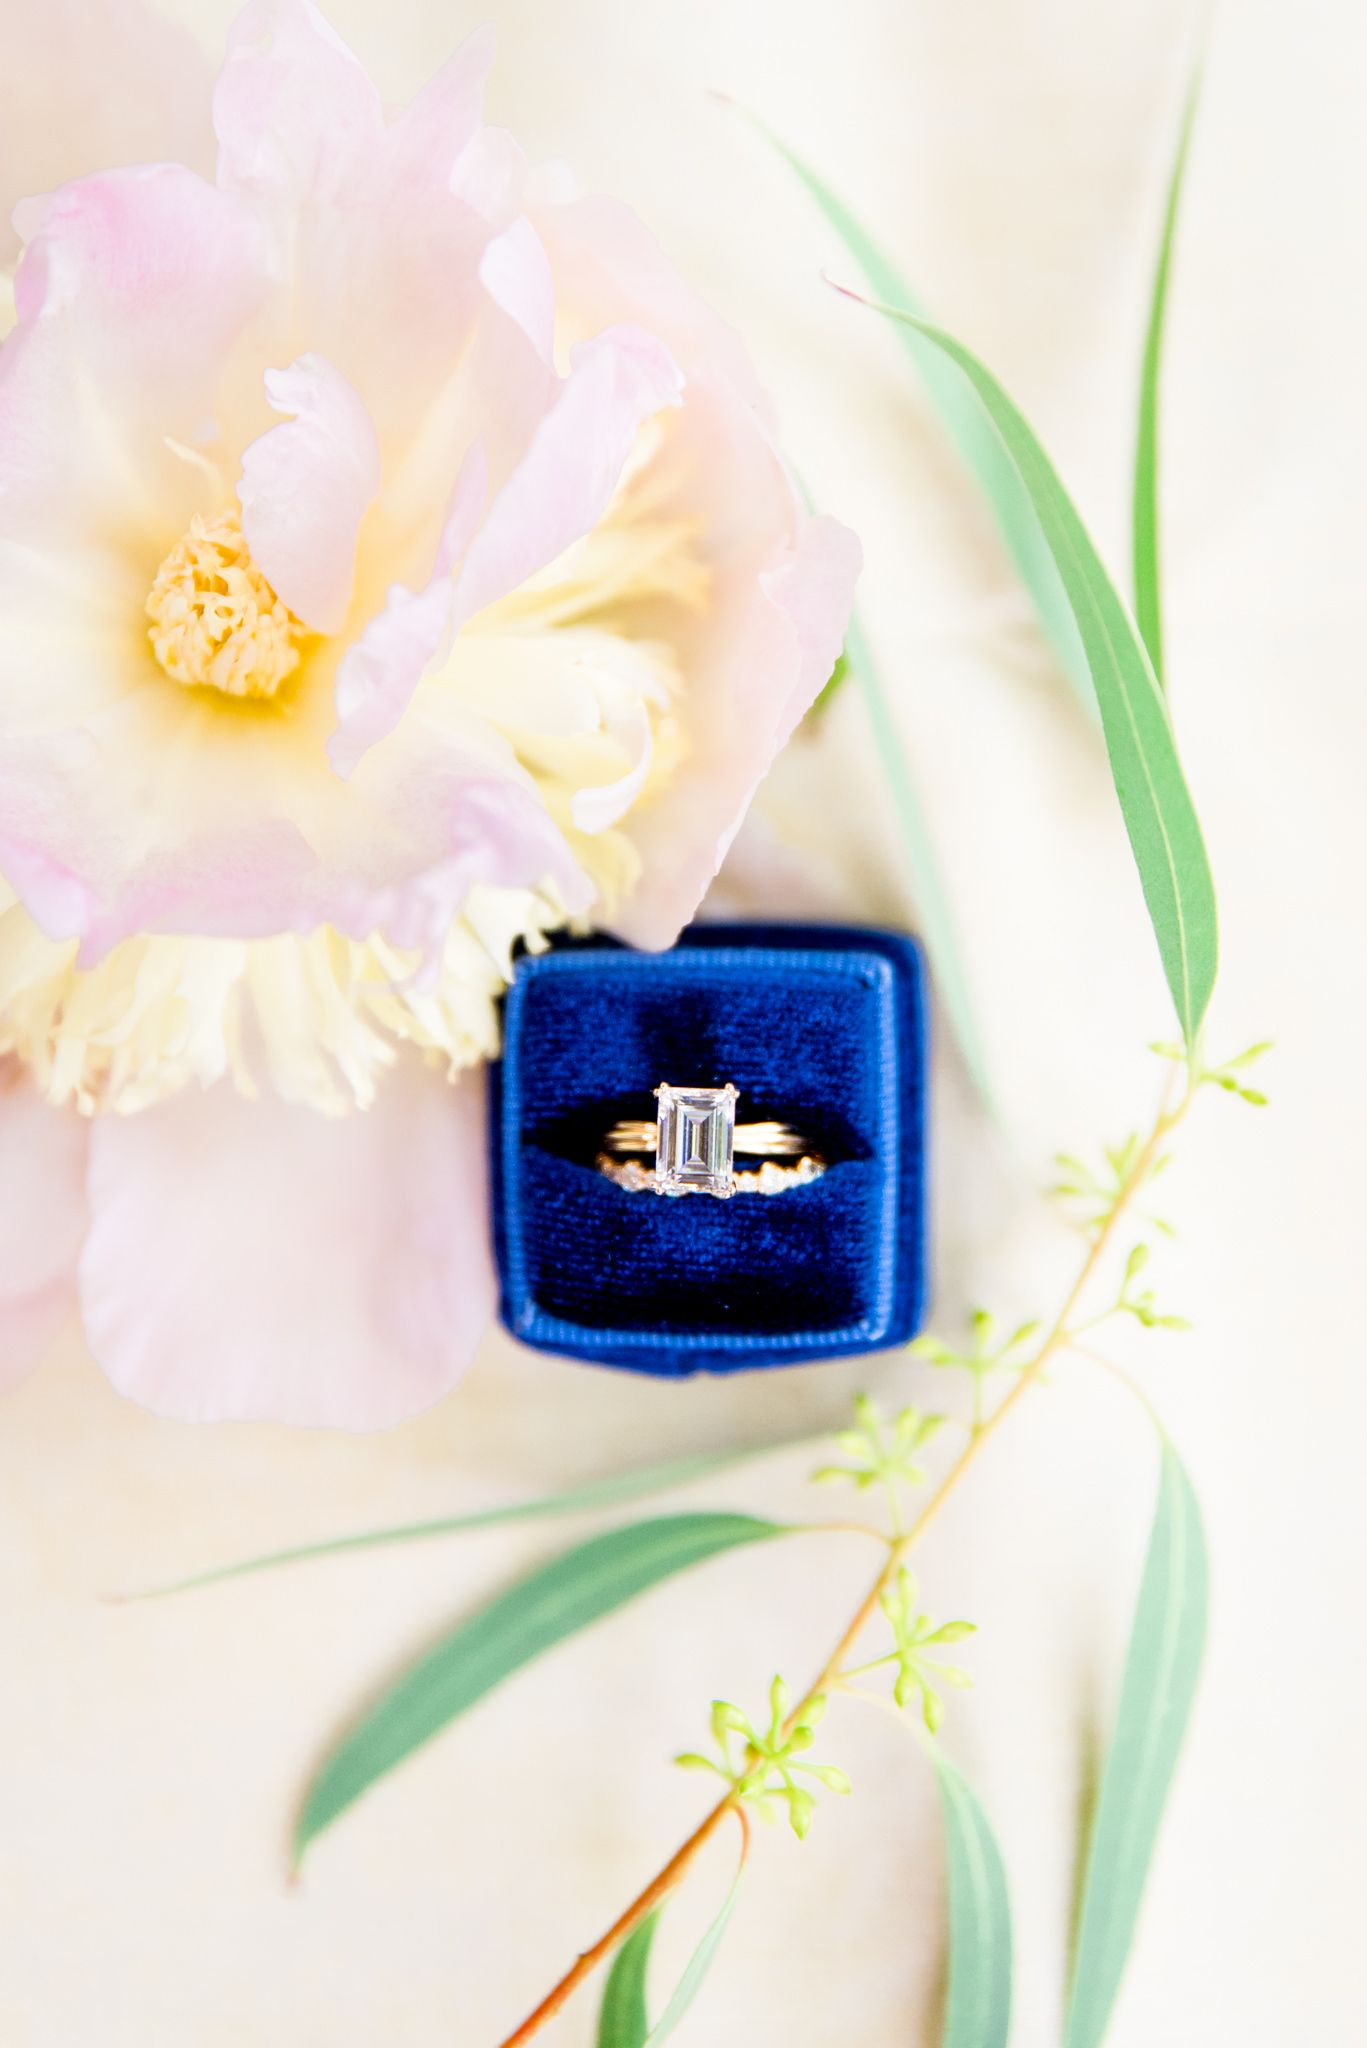 peony and green leaves surround blue ring box with emerald cut engagement ring and wedding band from Richter Phillips